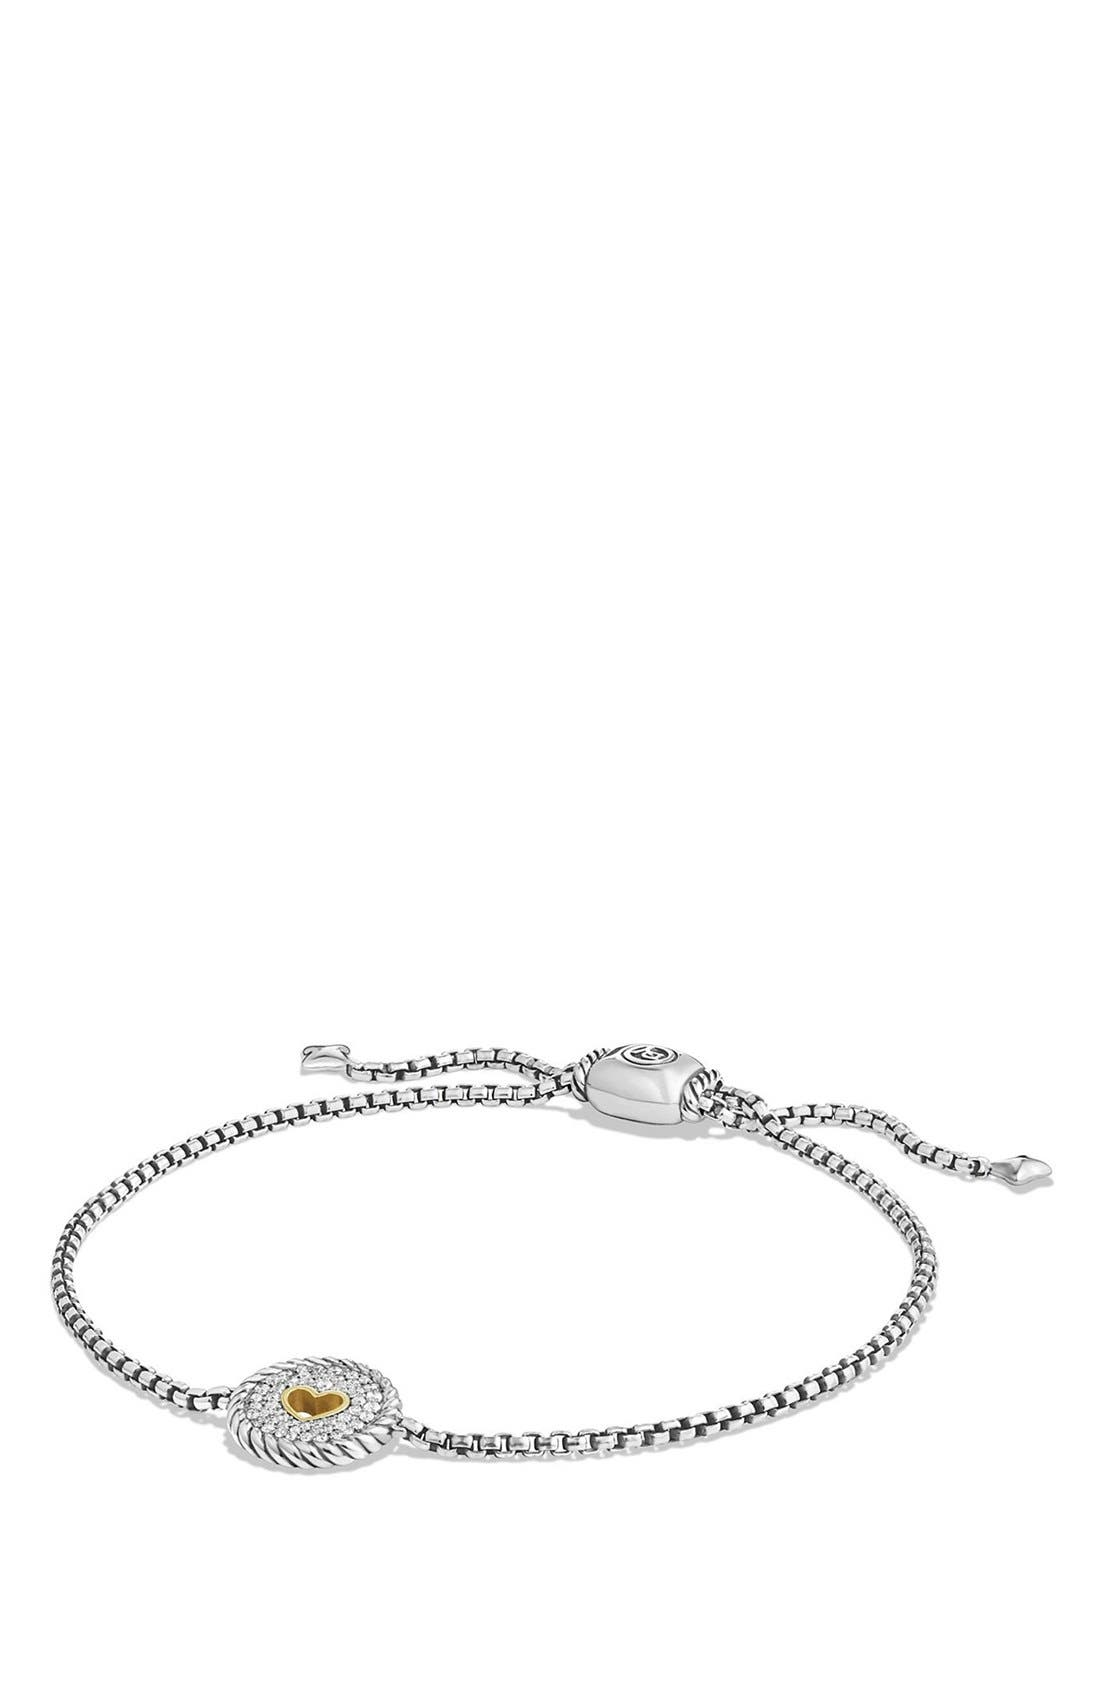 DAVID YURMAN 'Cable Collectibles' Heart Station Bracelet with